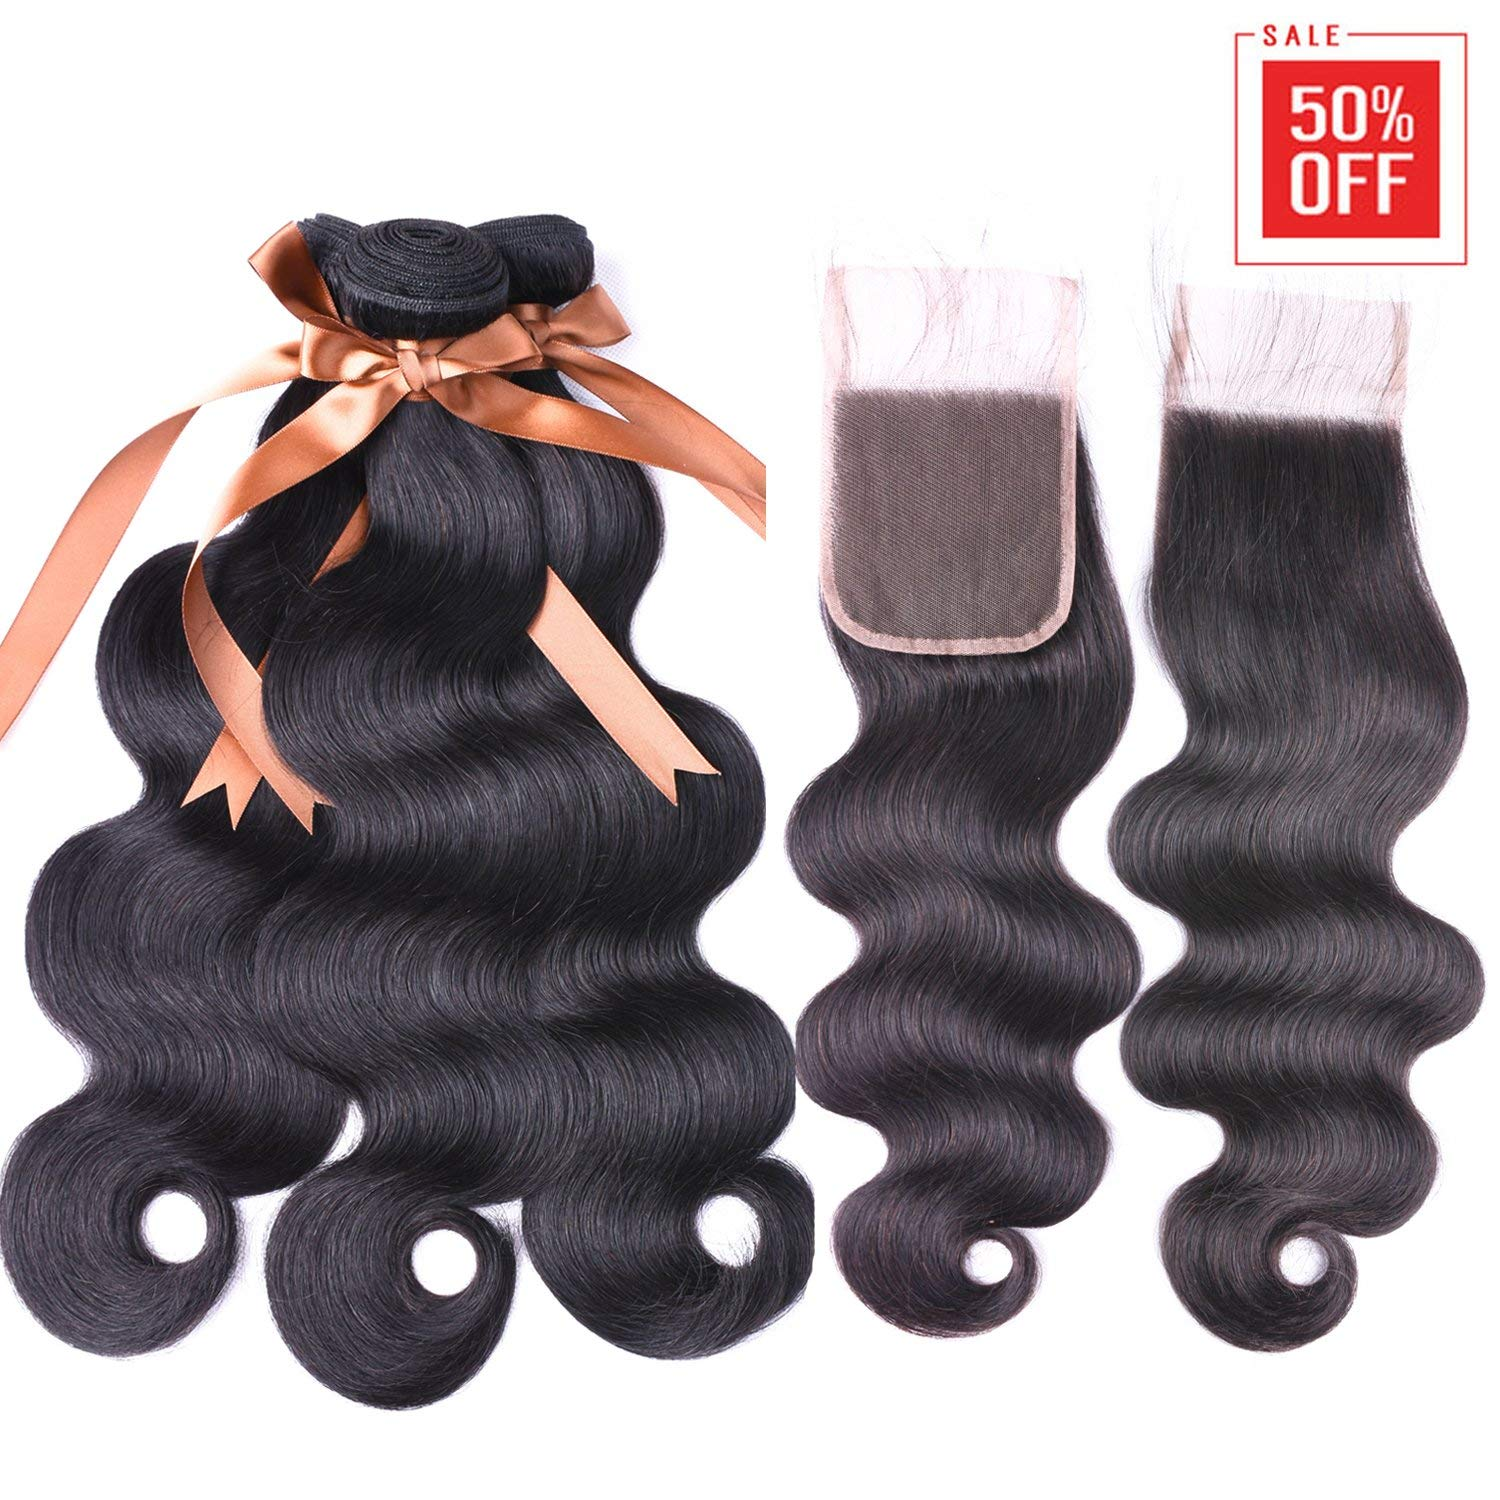 "Allrun Hair 7A Brazilian Body Wave 3 Bundles with Free Part Lace Closure 100% Unprocessed Human Hair Weave Extensions Bundles with 4×4 Closures (16 18 20+16"" Closure)"